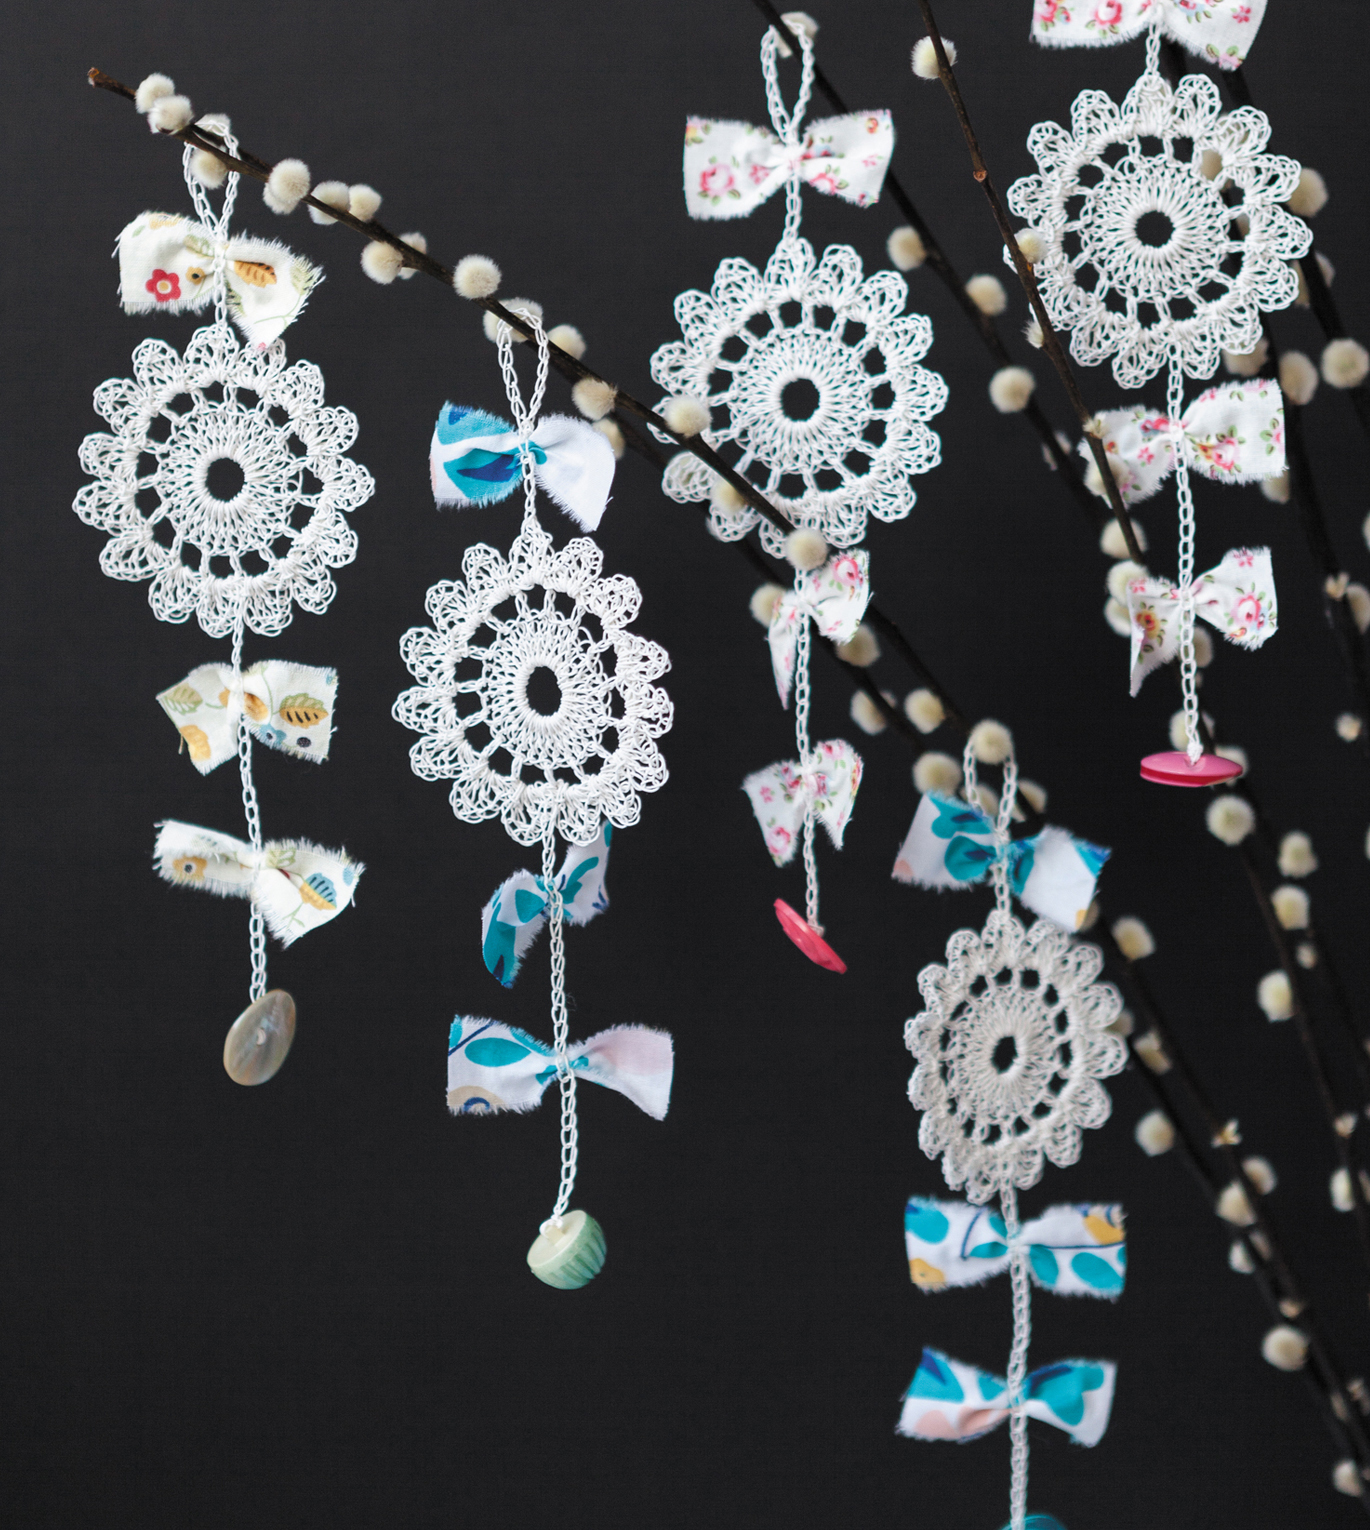 Paper Flower Charms from Crochet Home by Emma Lamb | Crochet designs and styling by Emma Lamb / Photography by Jason M Jenkins